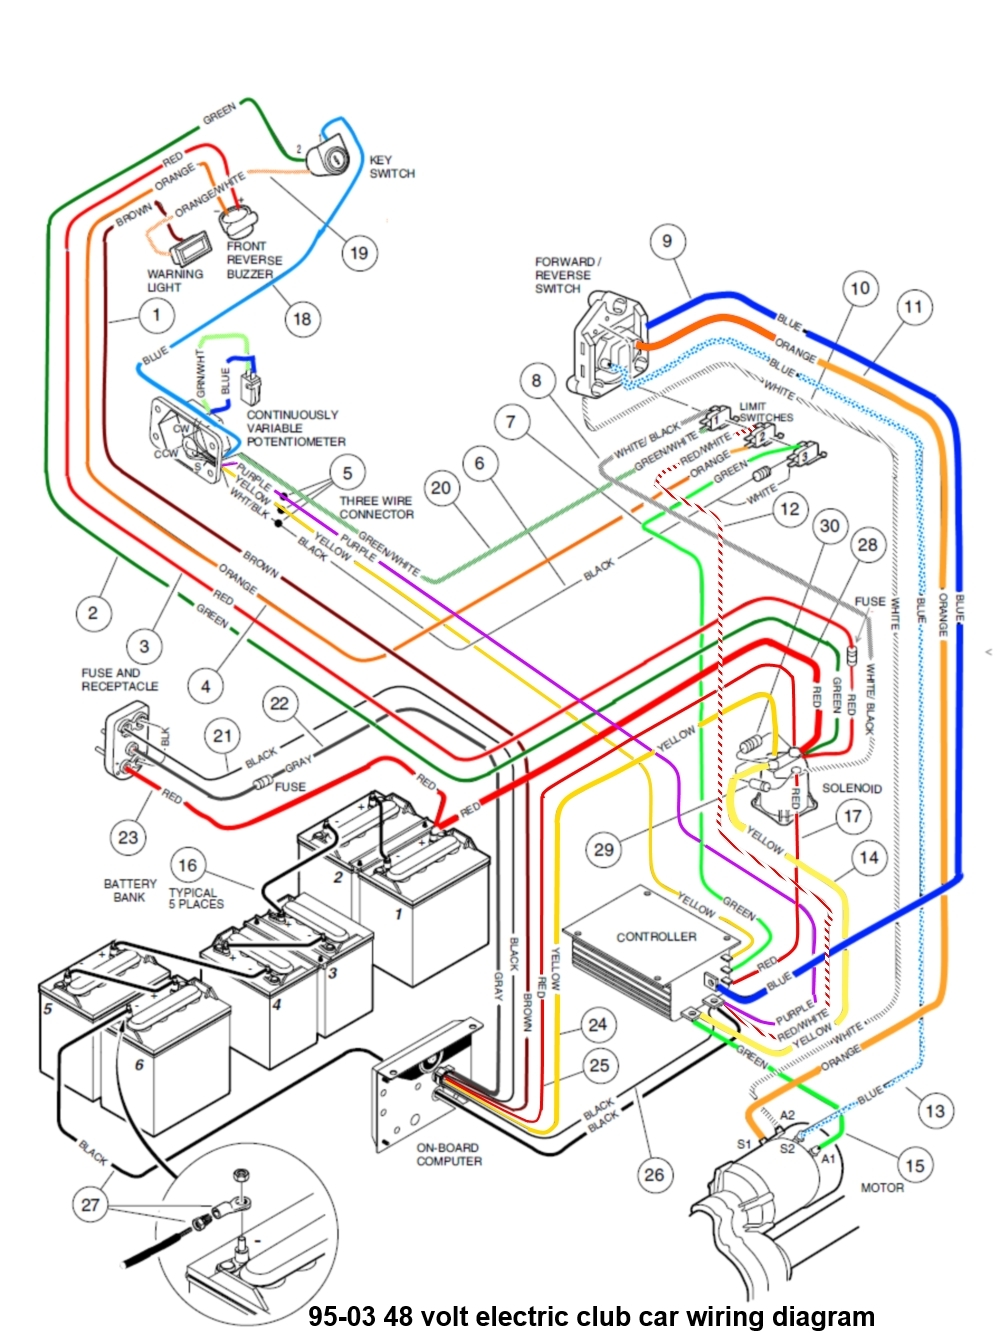 Ingersoll Rand Club Car Wiring Diagram And Wiring Diagram For 1999 pertaining to Club Car Golf Cart Parts Diagram